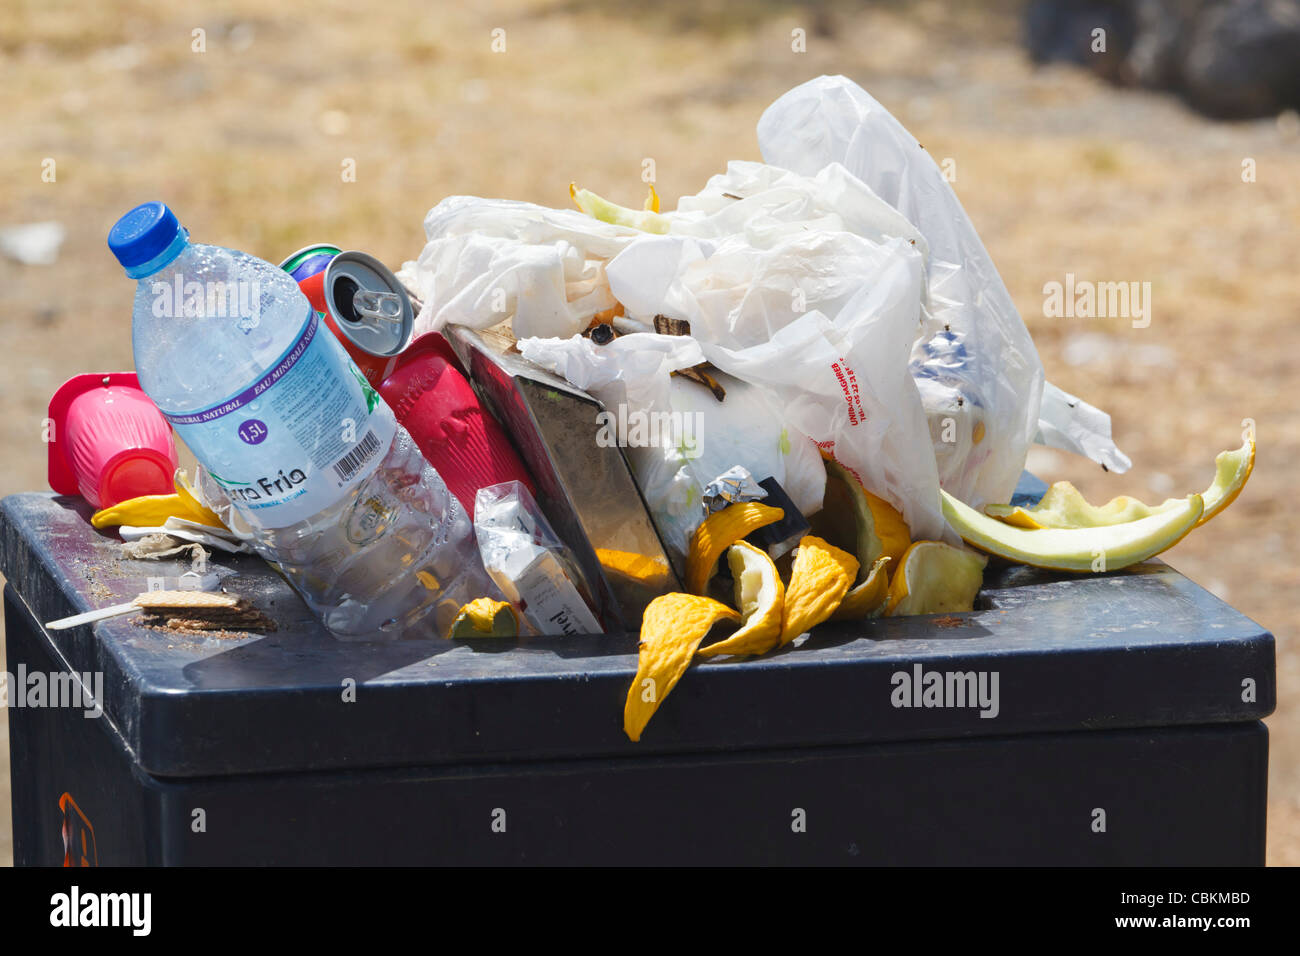 Overflowing rubbish bin at highway rest stop, southern Spain. - Stock Image